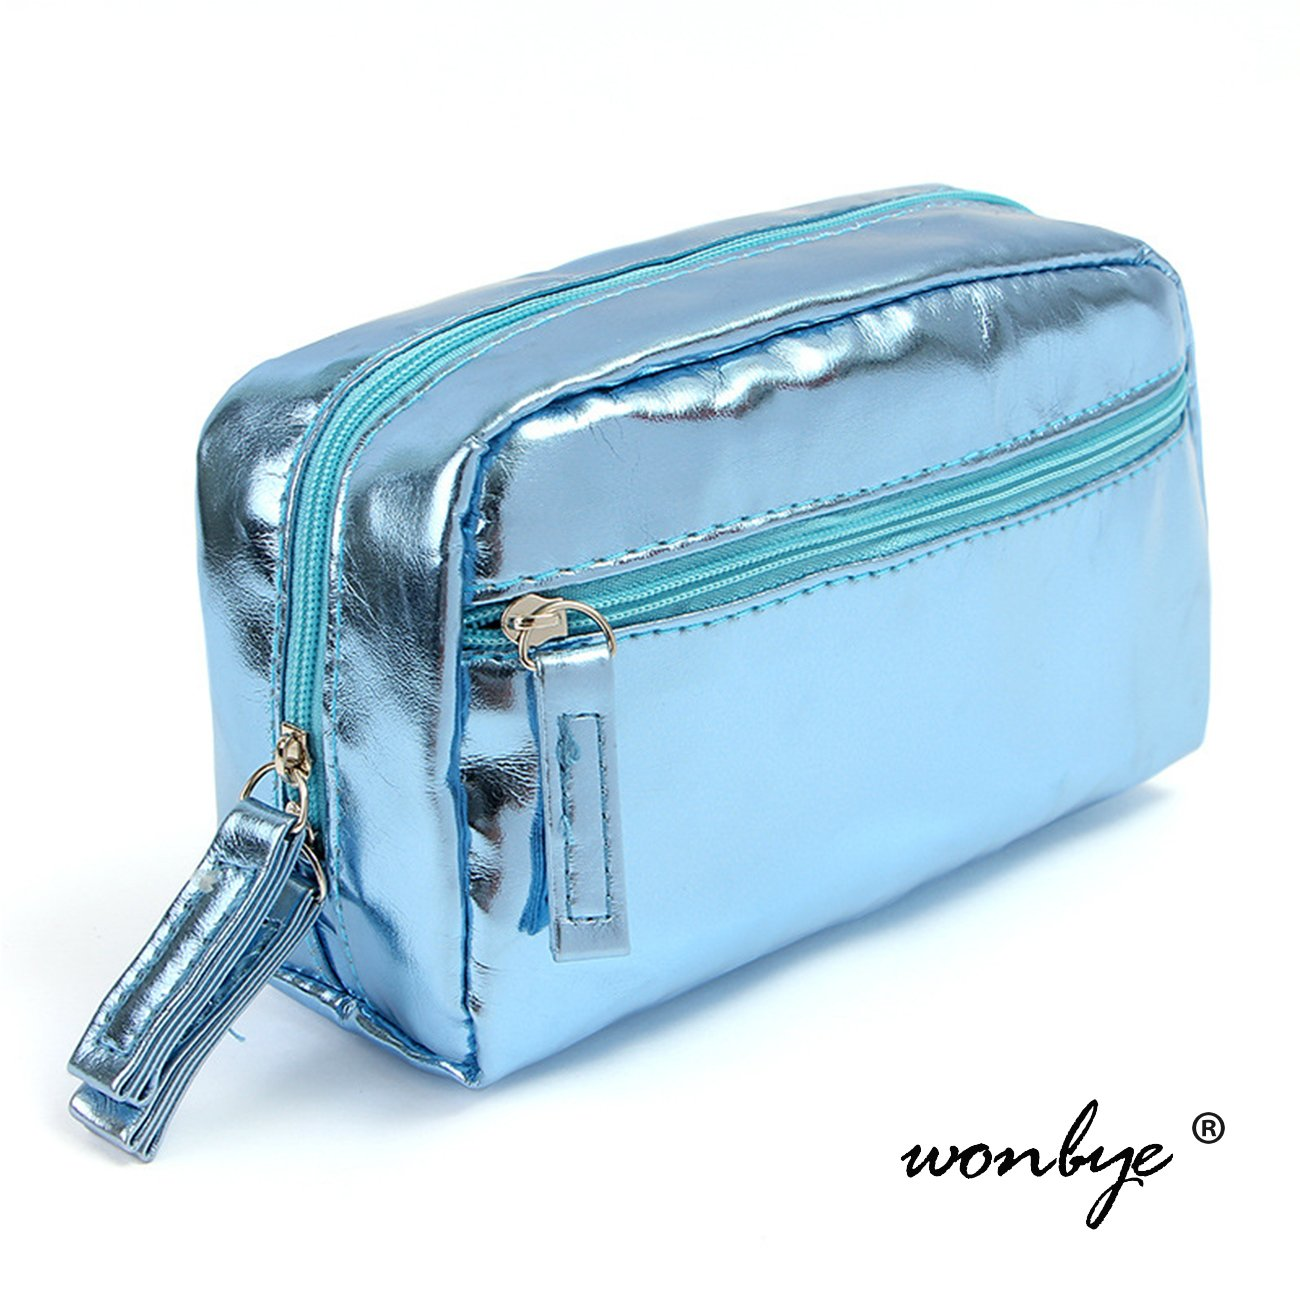 0dd465e204be Toiletry Bag, wonbye PU Leather Waterproof Travel Toiletry Bag Organizer  Perfect for travel & Household...